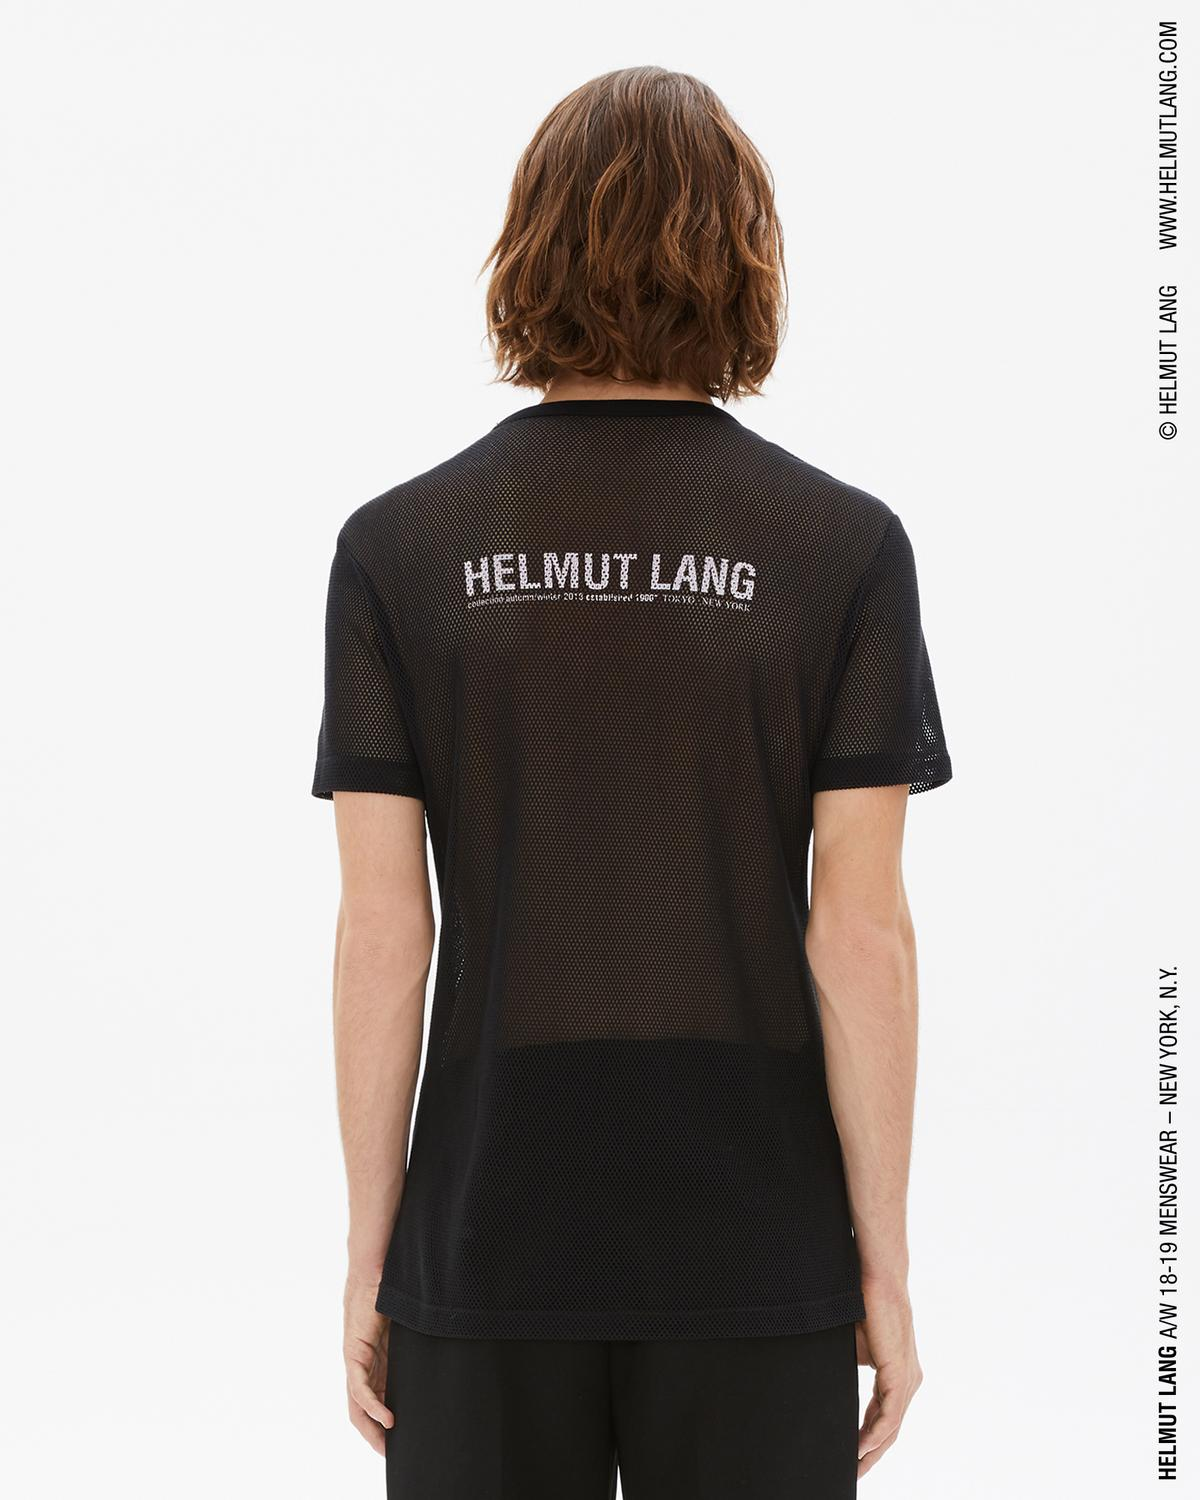 MESH LOGO BACK T-SHIRT